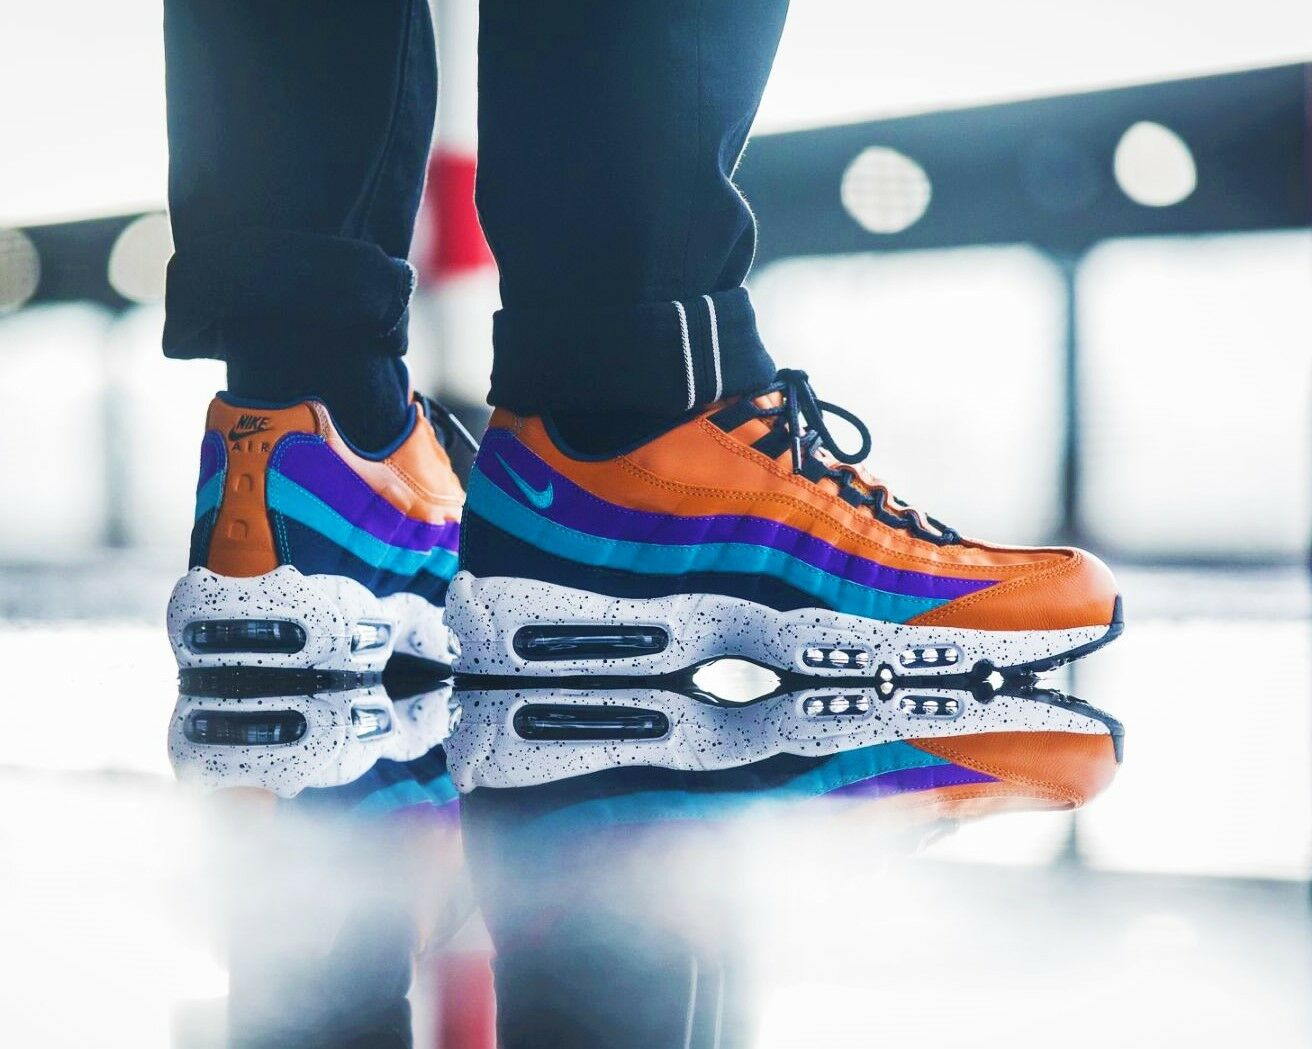 BNWB & Authentic Nike Air Max 95 Premium ®  Monarch  Trainers UK Size 8.5